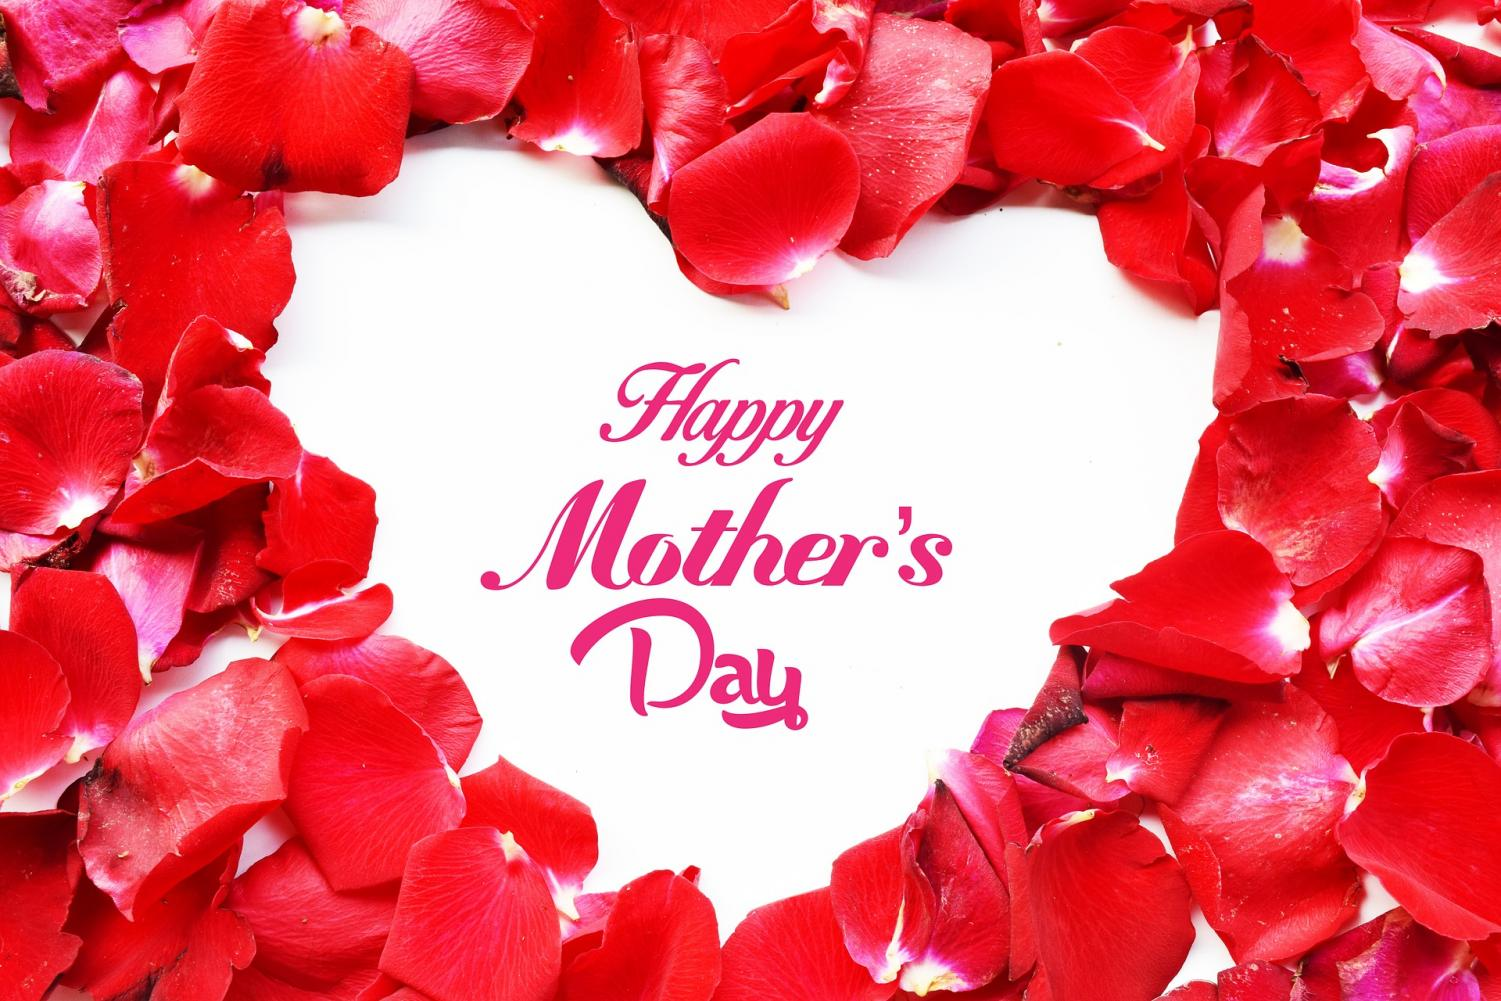 Mother's day is coming, what are you getting your mom?